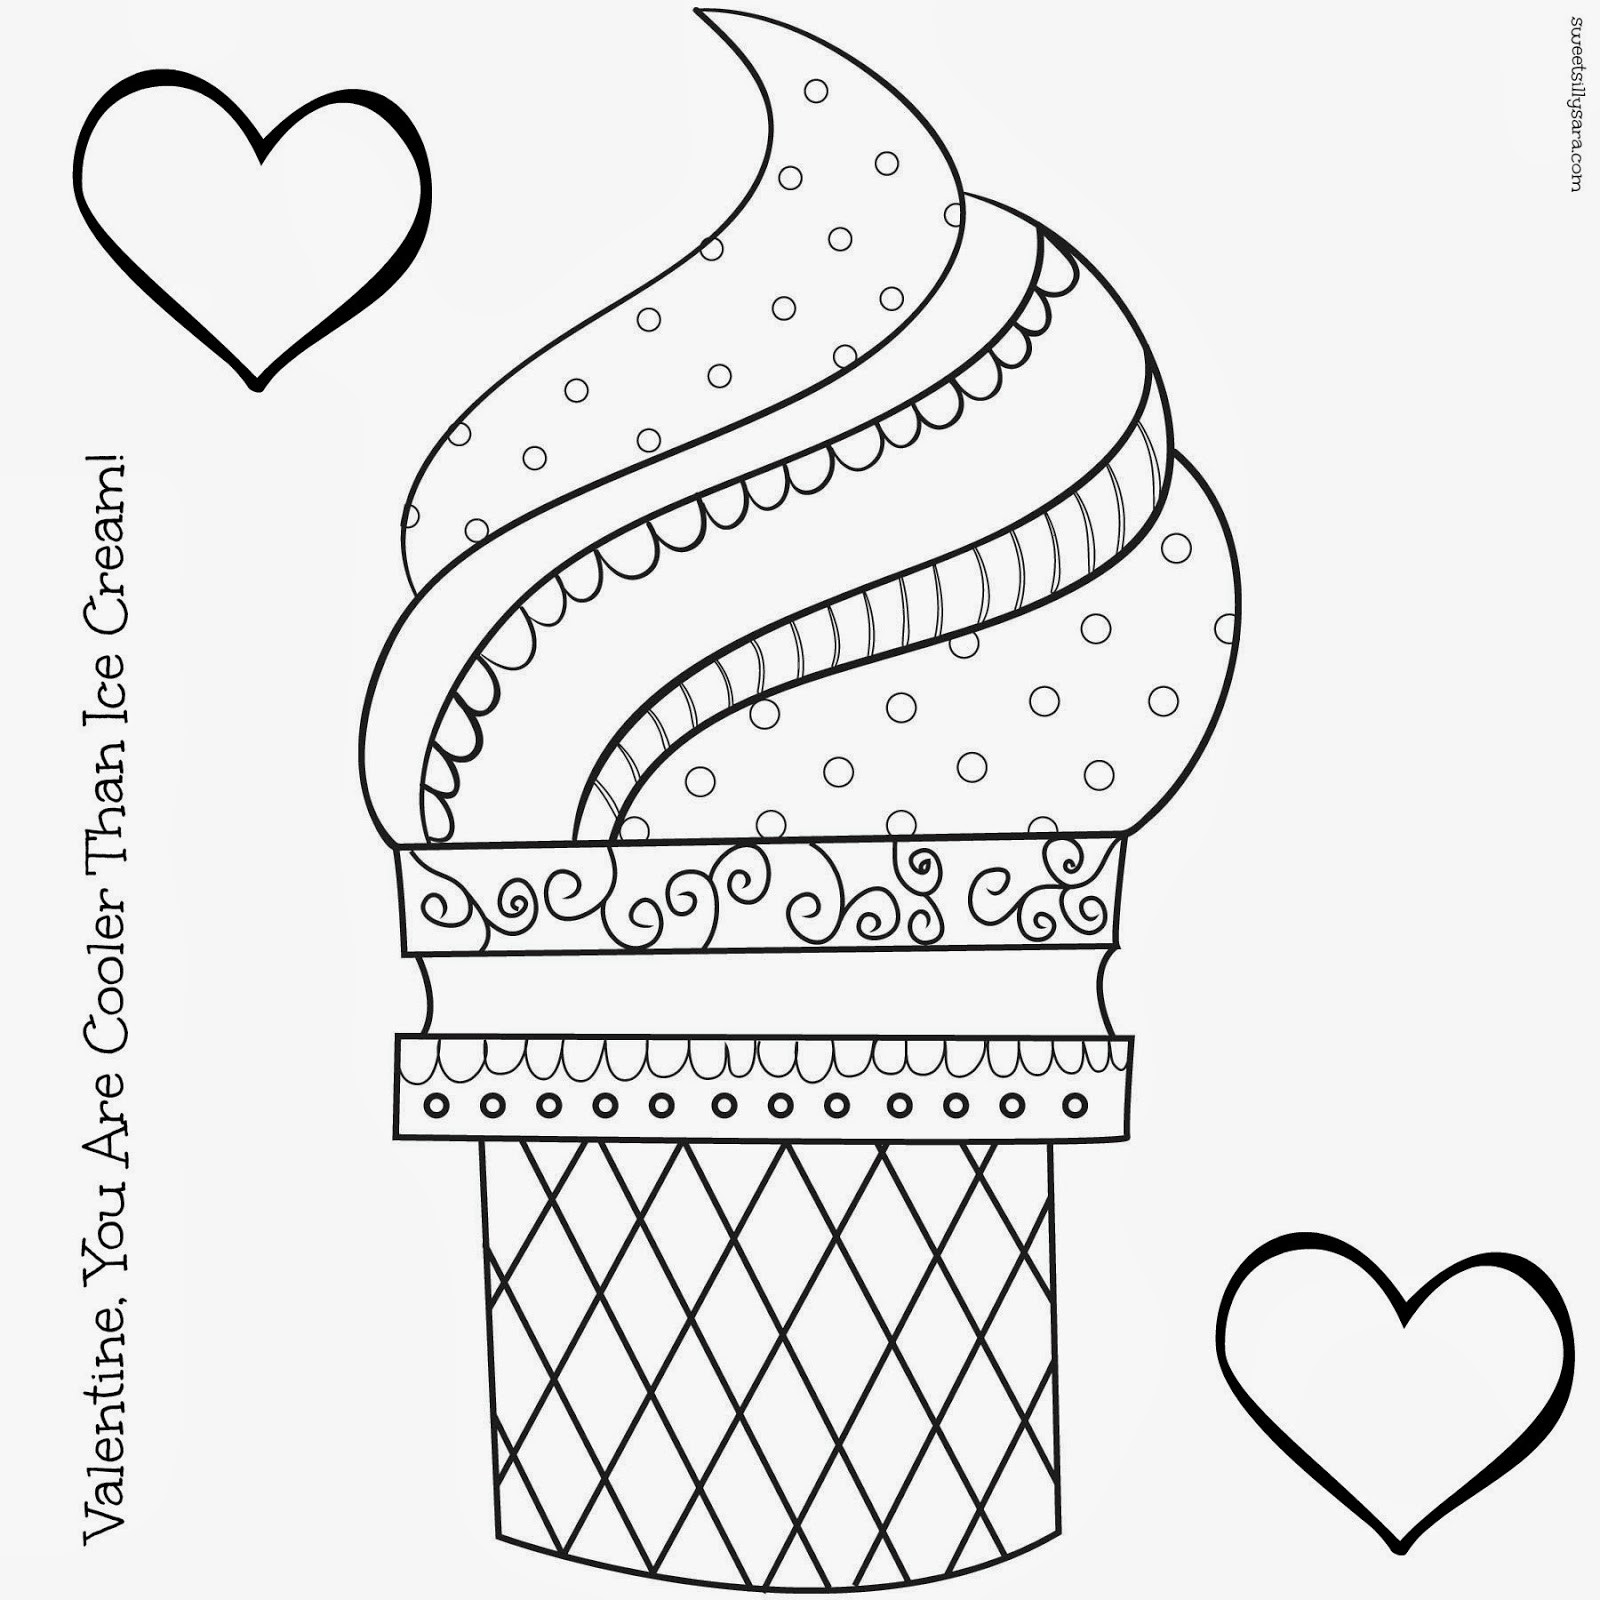 Coloring Pages For Girls 8 Years Old Patterns  Printable Coloring Pages For Girls Age 11 The Art Jinni